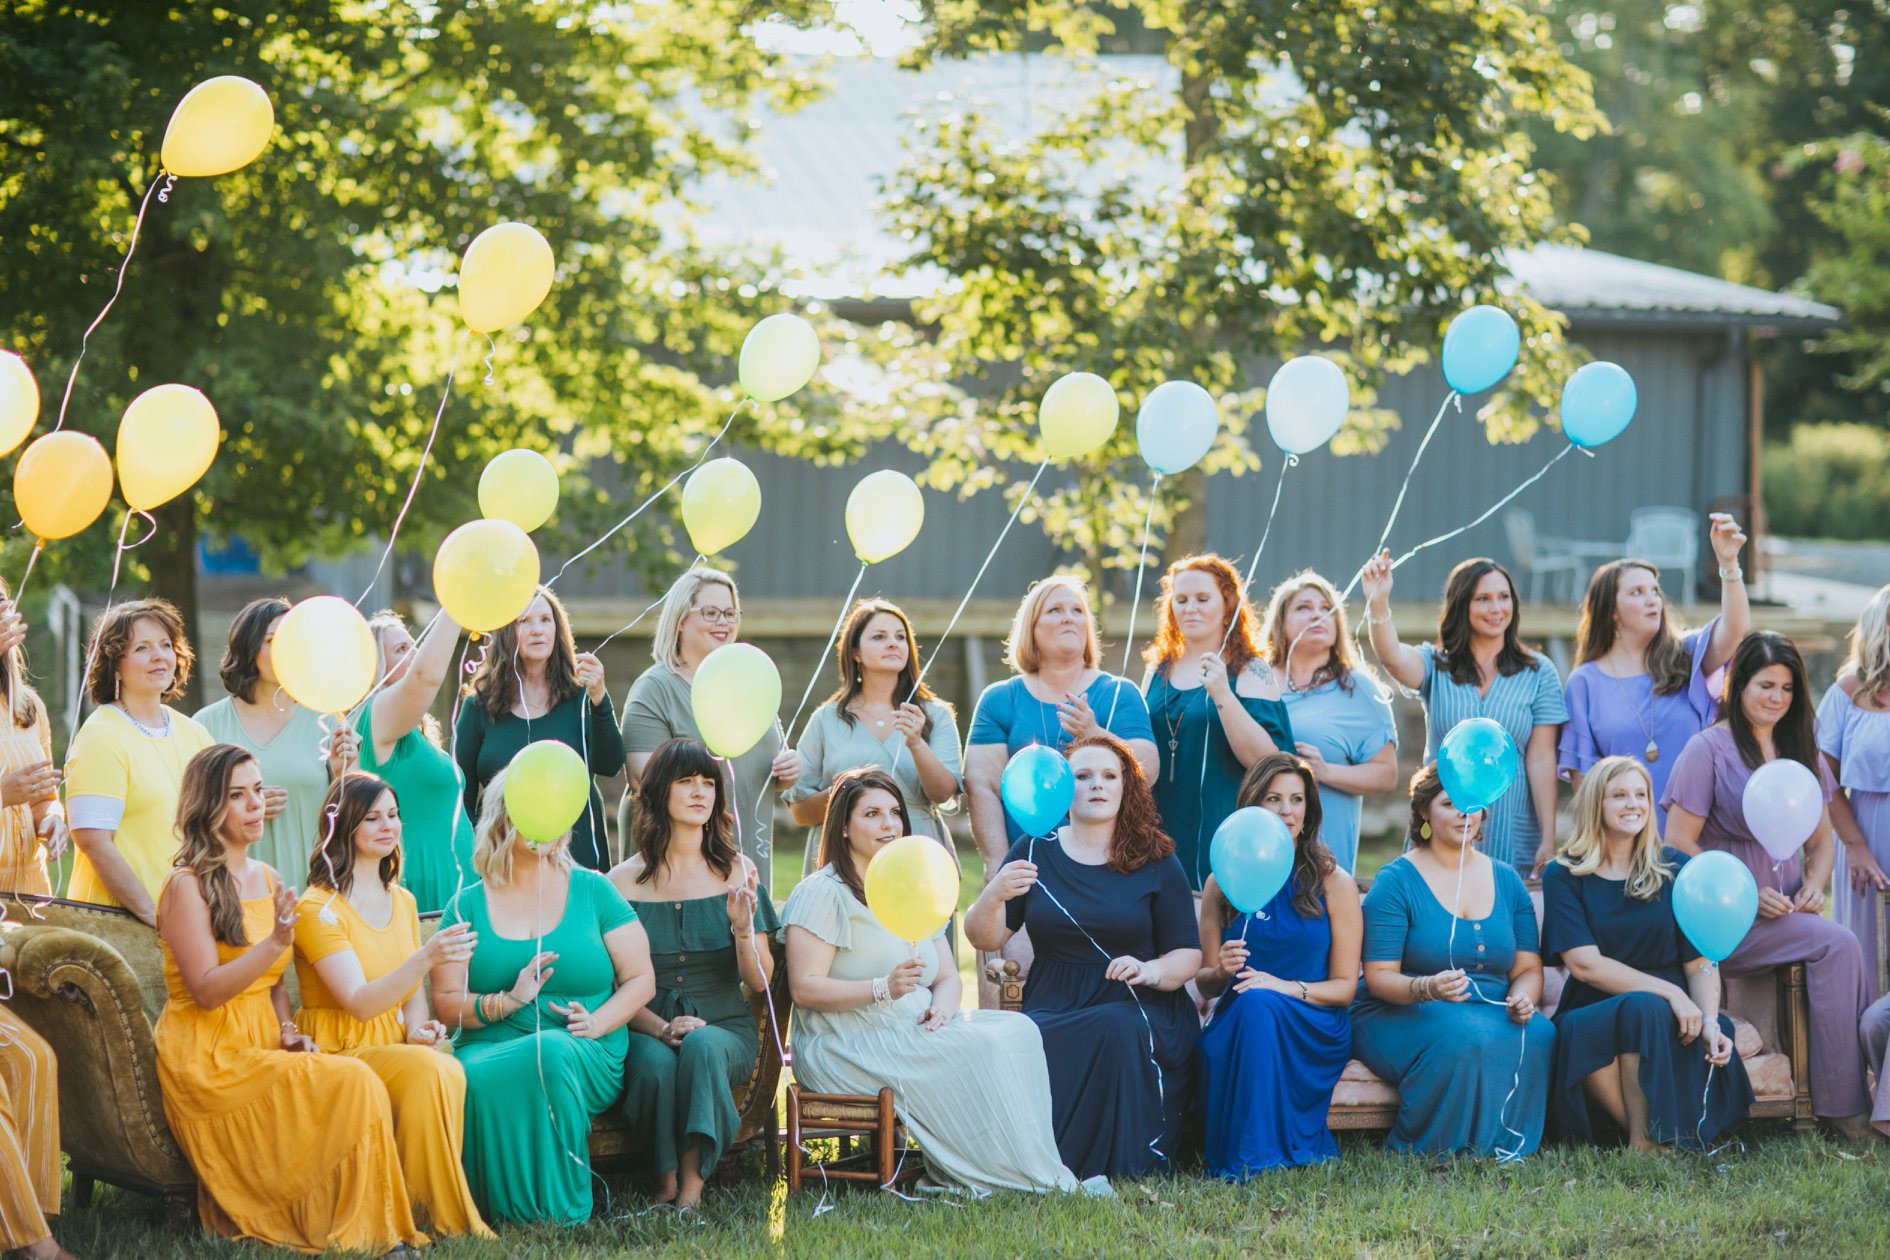 Ashley Sargent took group photos of mothers who gave birth after miscarriages.